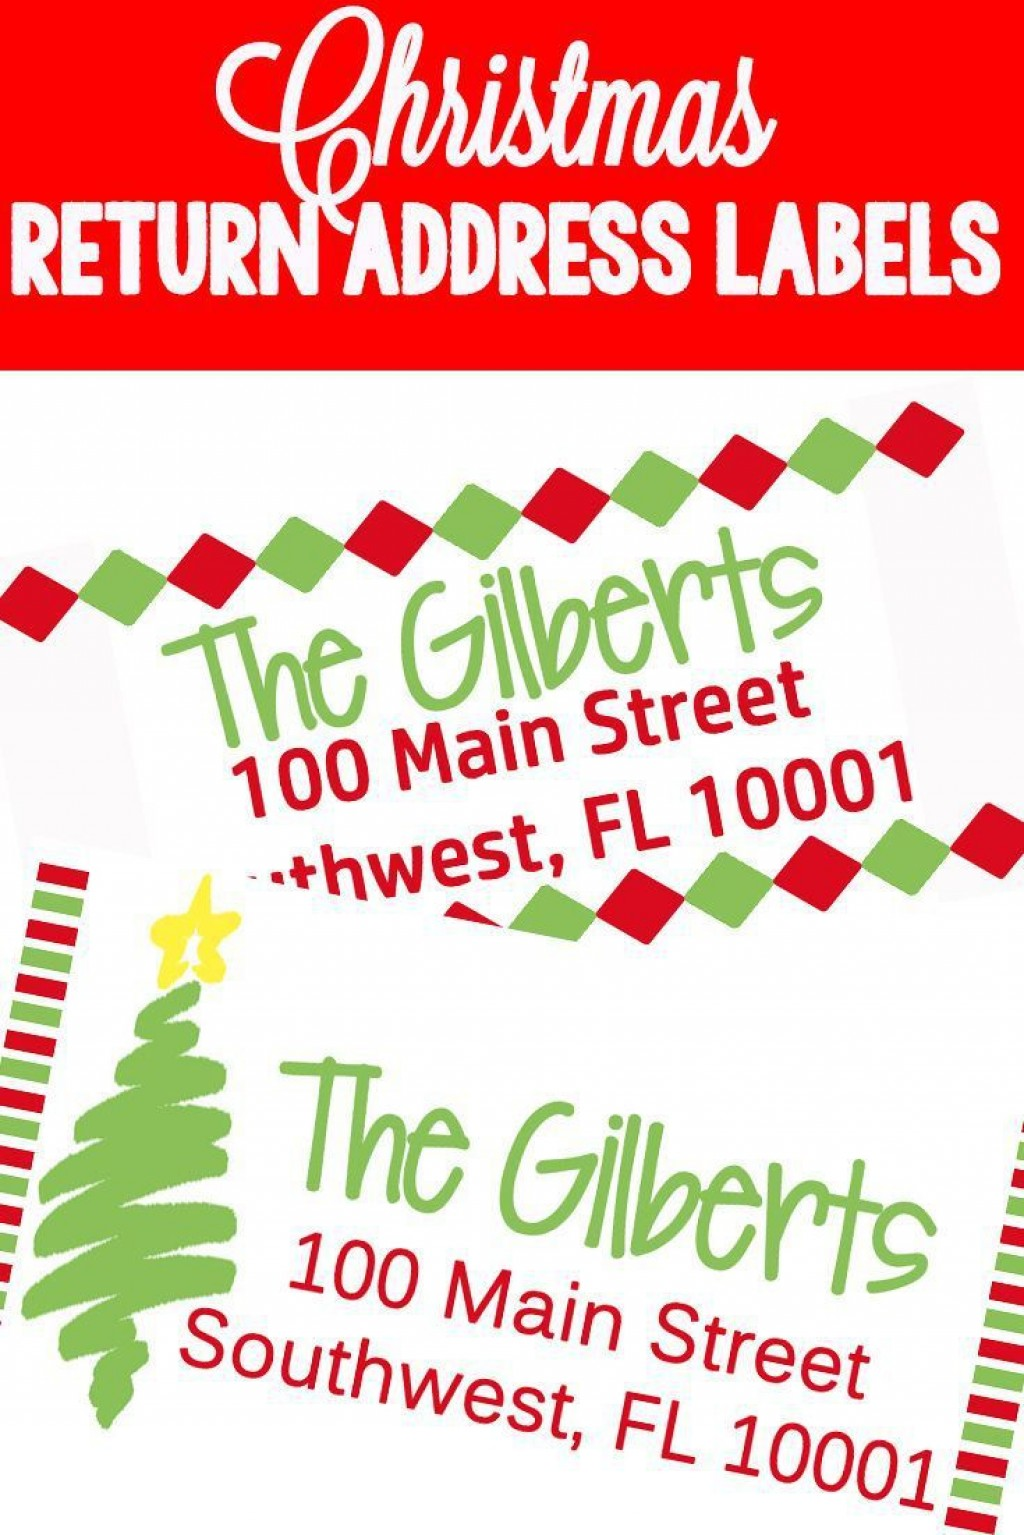 009 Phenomenal Christma Mailing Label Template High Resolution  Addres Free Download ReturnLarge